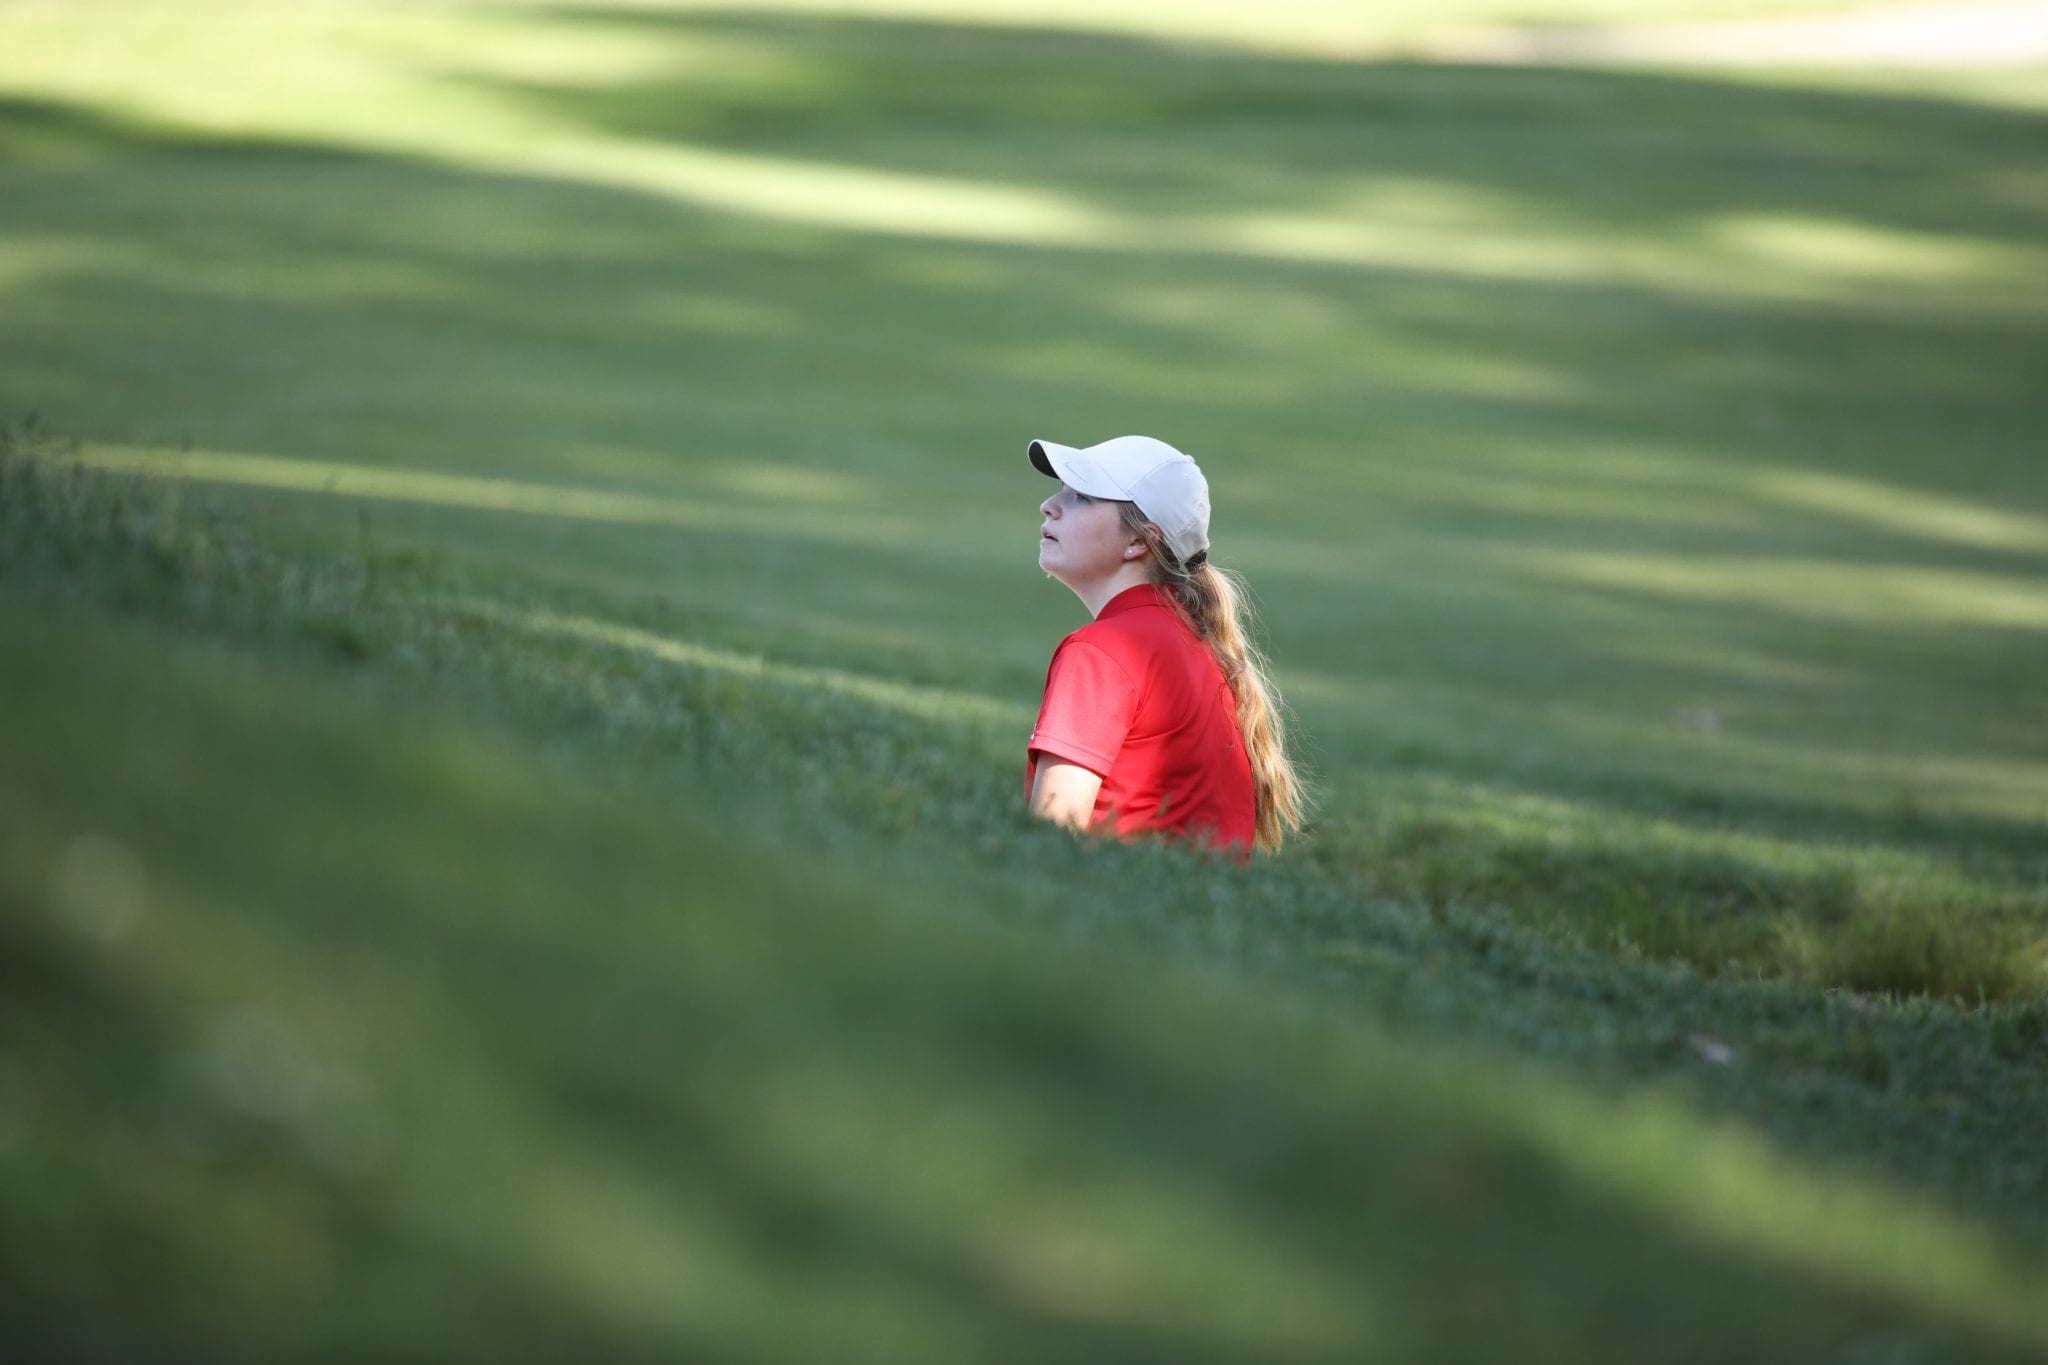 Sophomore Piper Jordan checks out where the pin is from the bunker well below the hole.